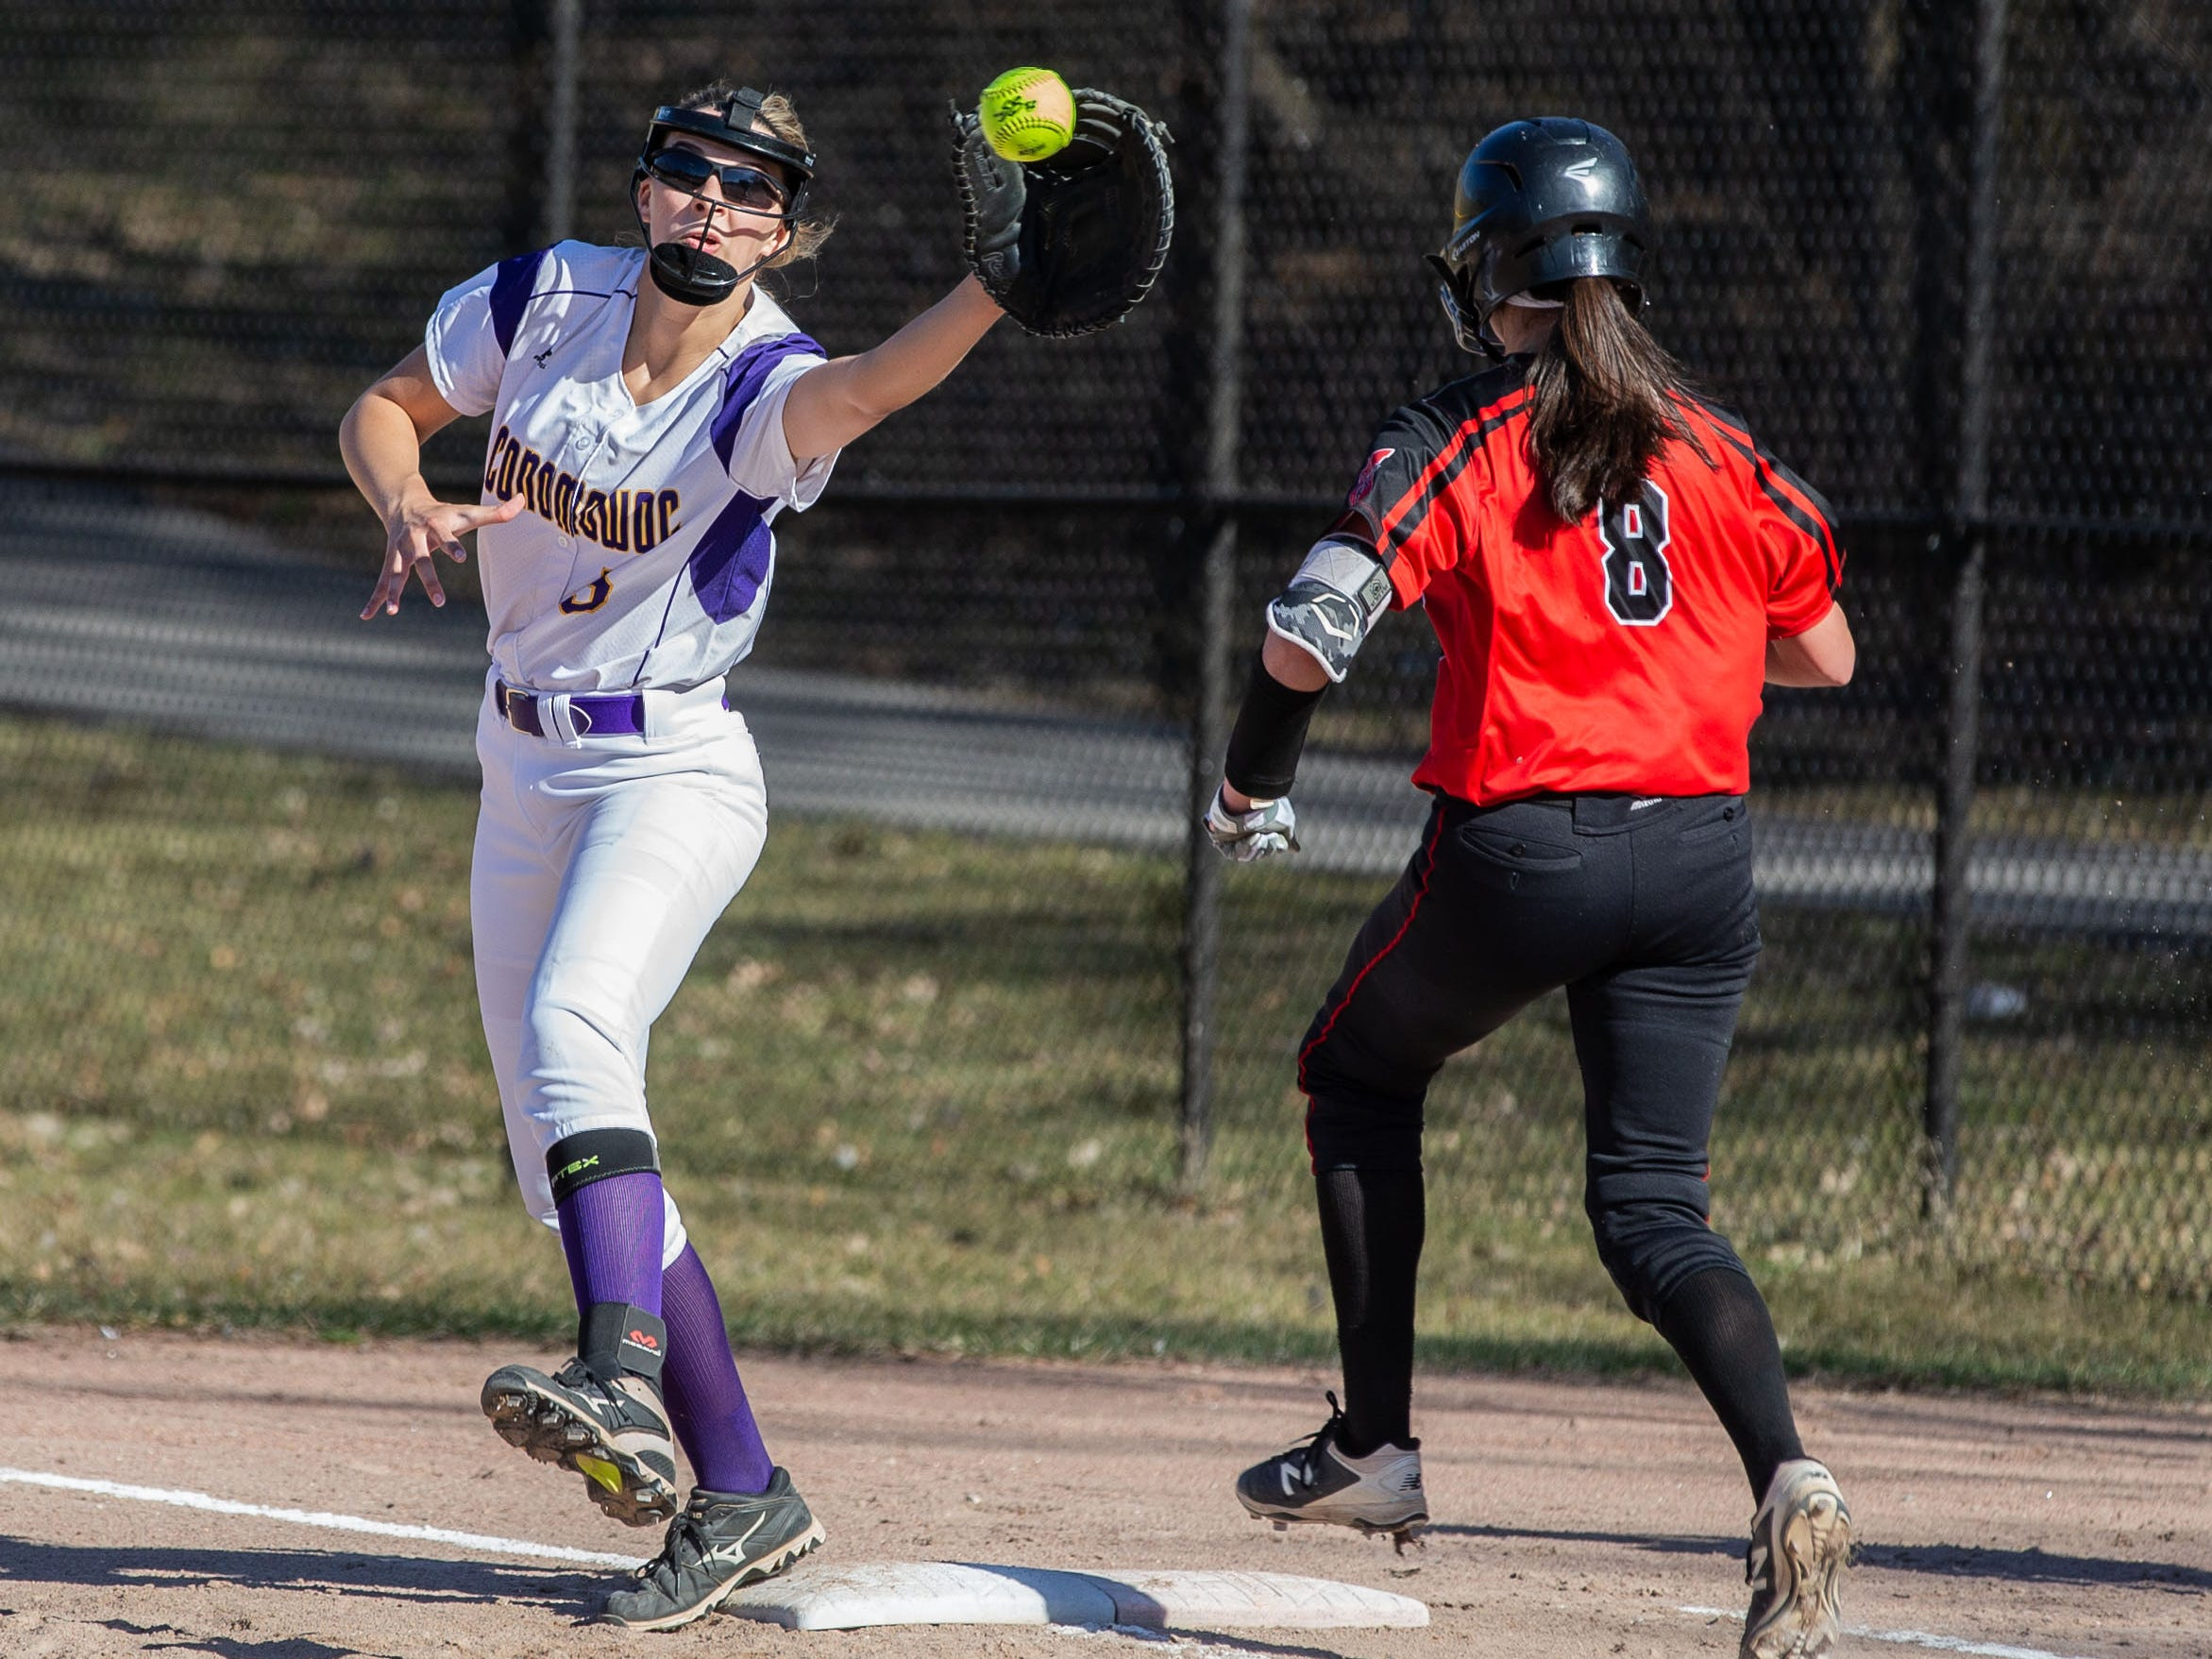 Oconomowoc's Taylor Eckert (5) gets the play at first during the game at home against Sussex Hamilton on Monday, April 8, 2019.